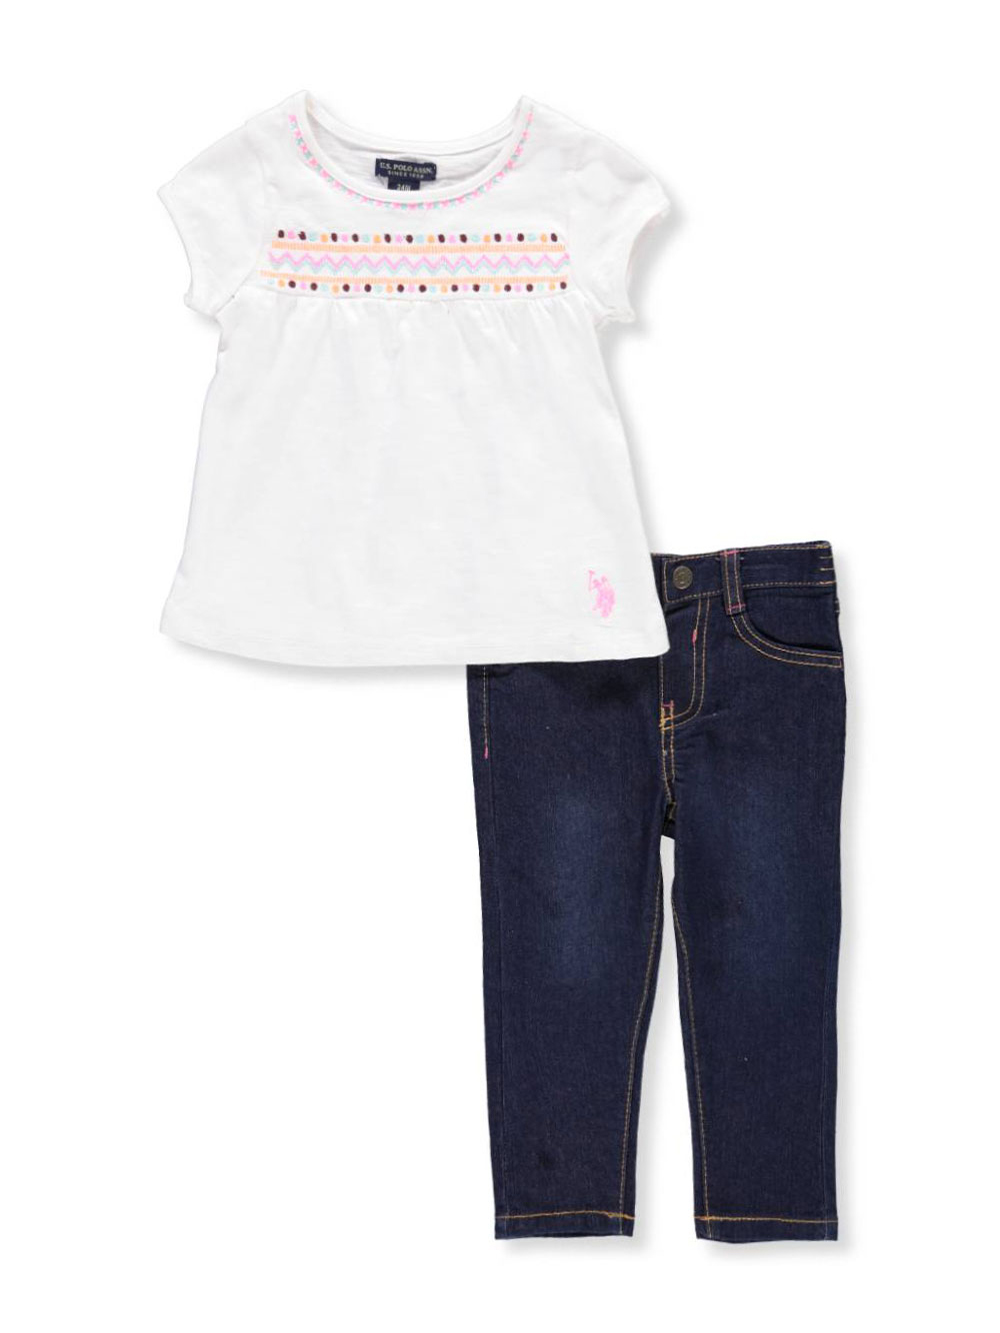 U S Polo Assn Baby Girls 2 Piece Outfit